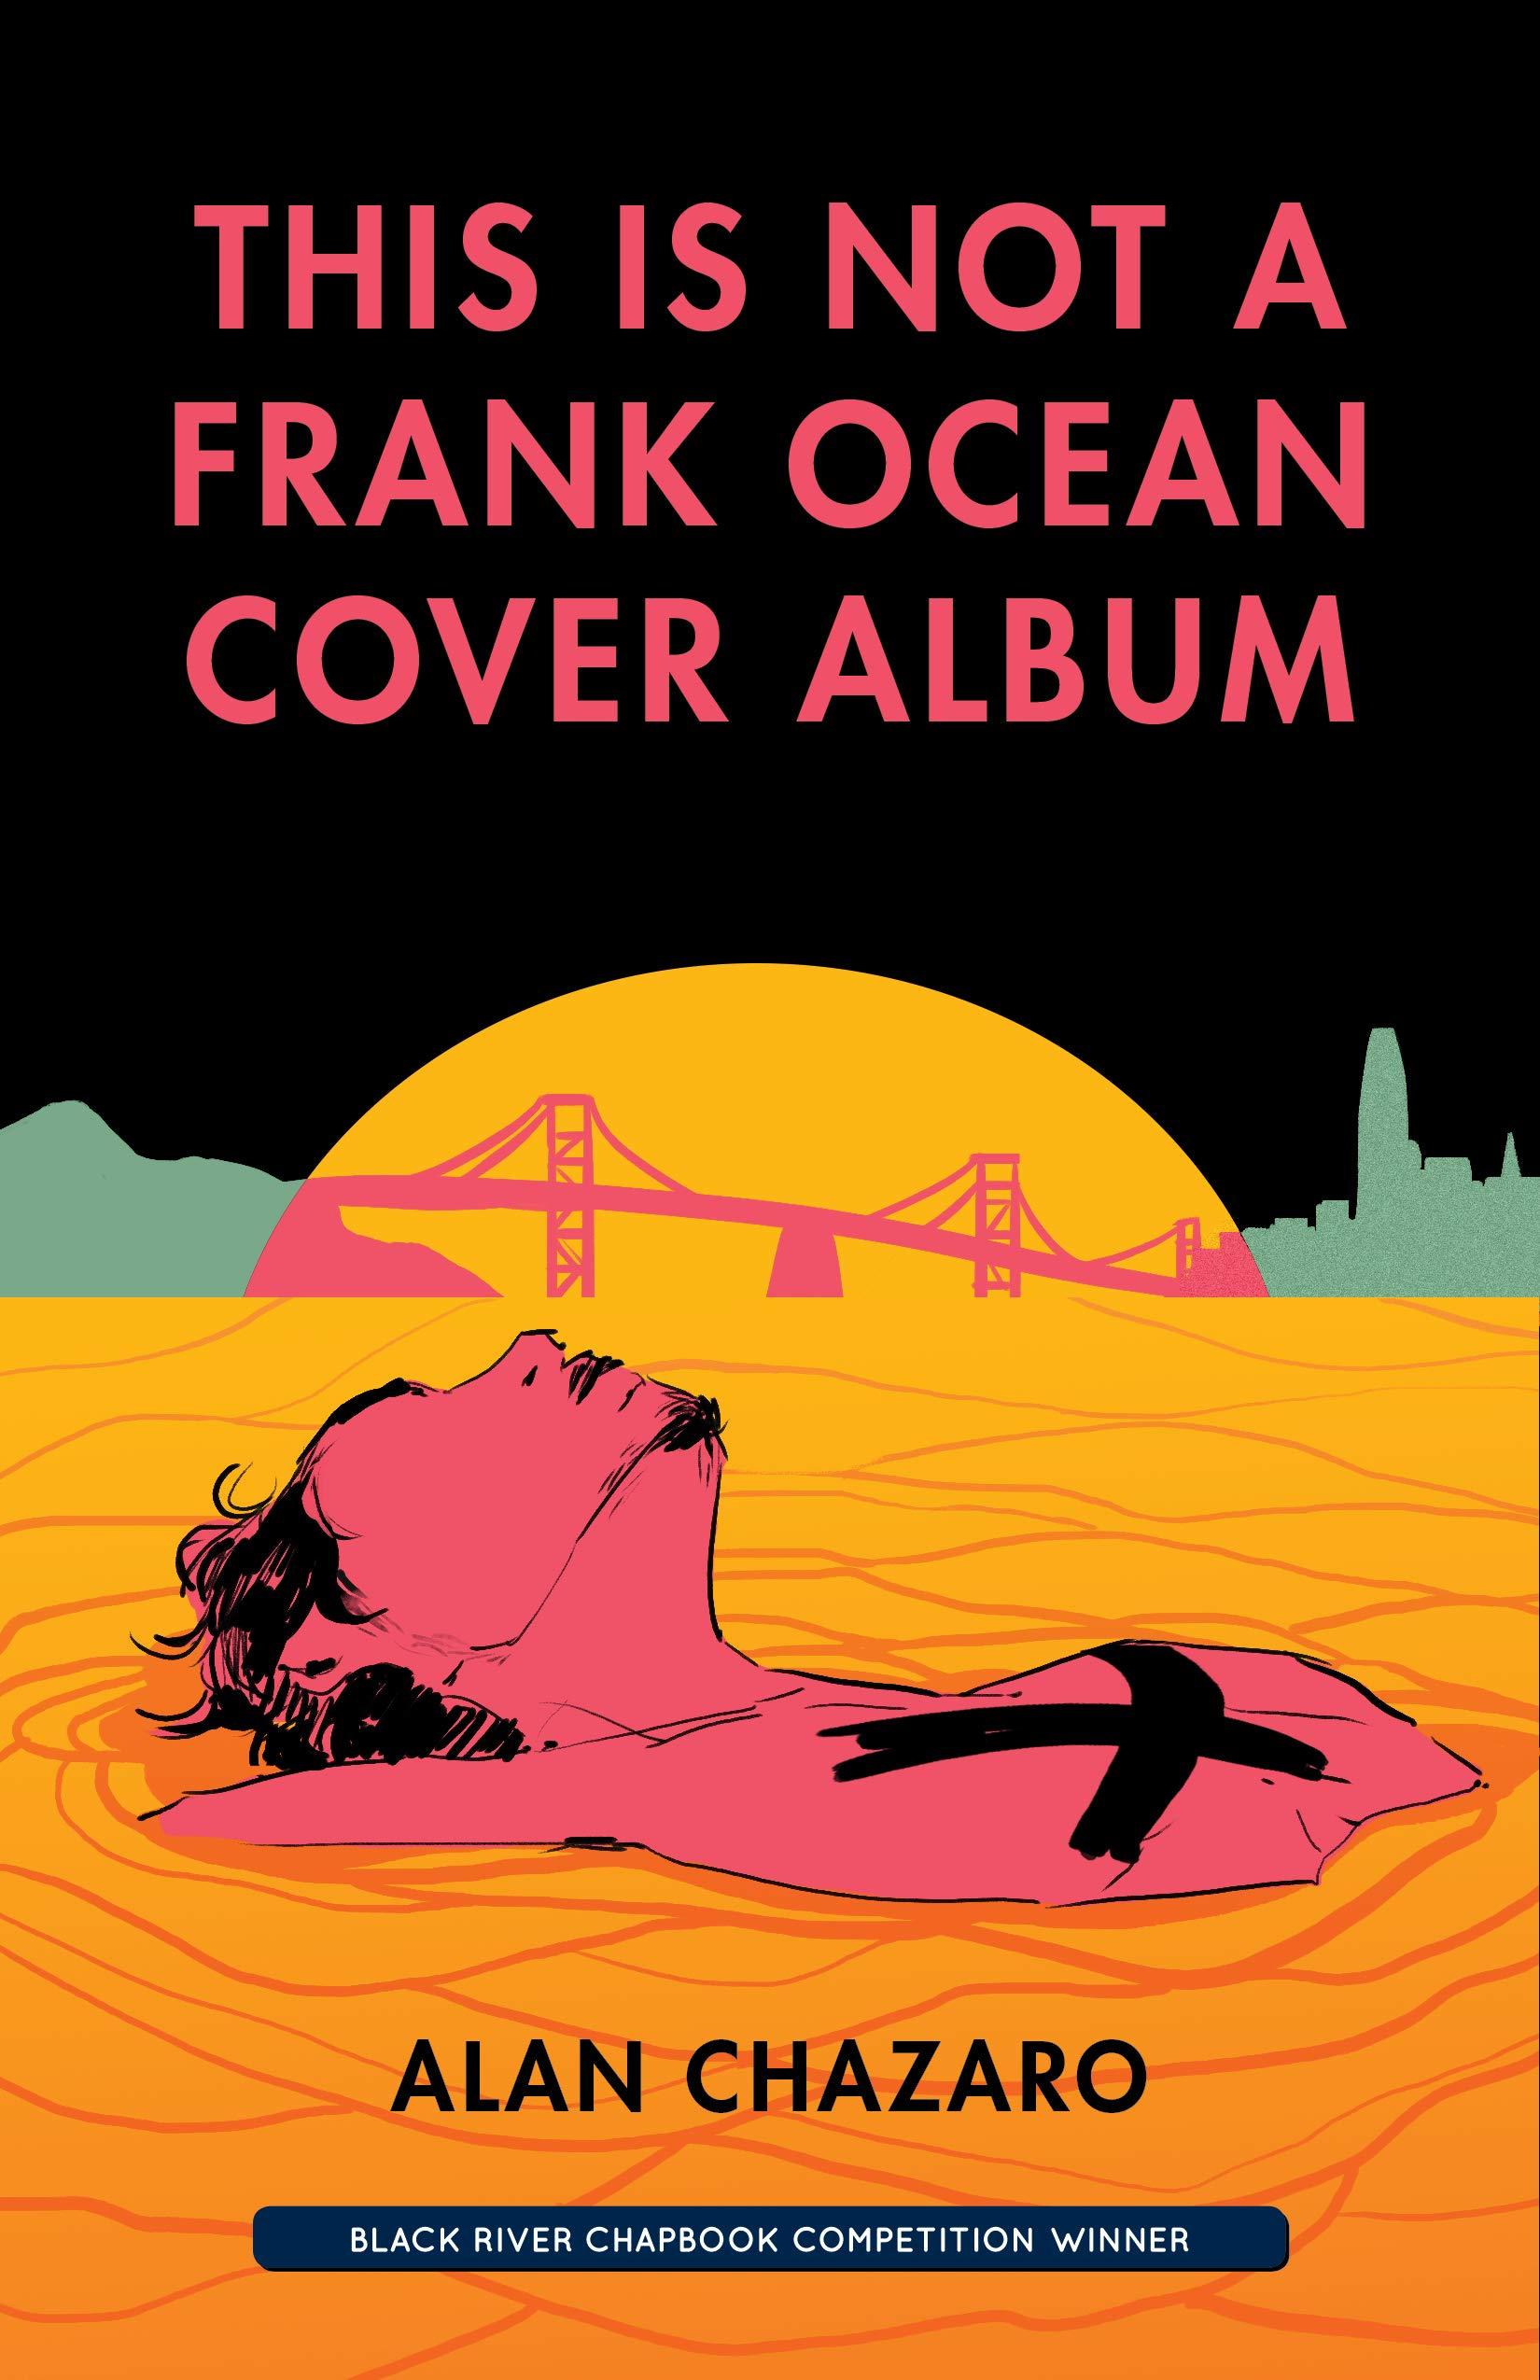 Barrelhouse Reviews: THIS IS NOT A FRANK OCEAN COVER ALBUM by Alan Chazaro